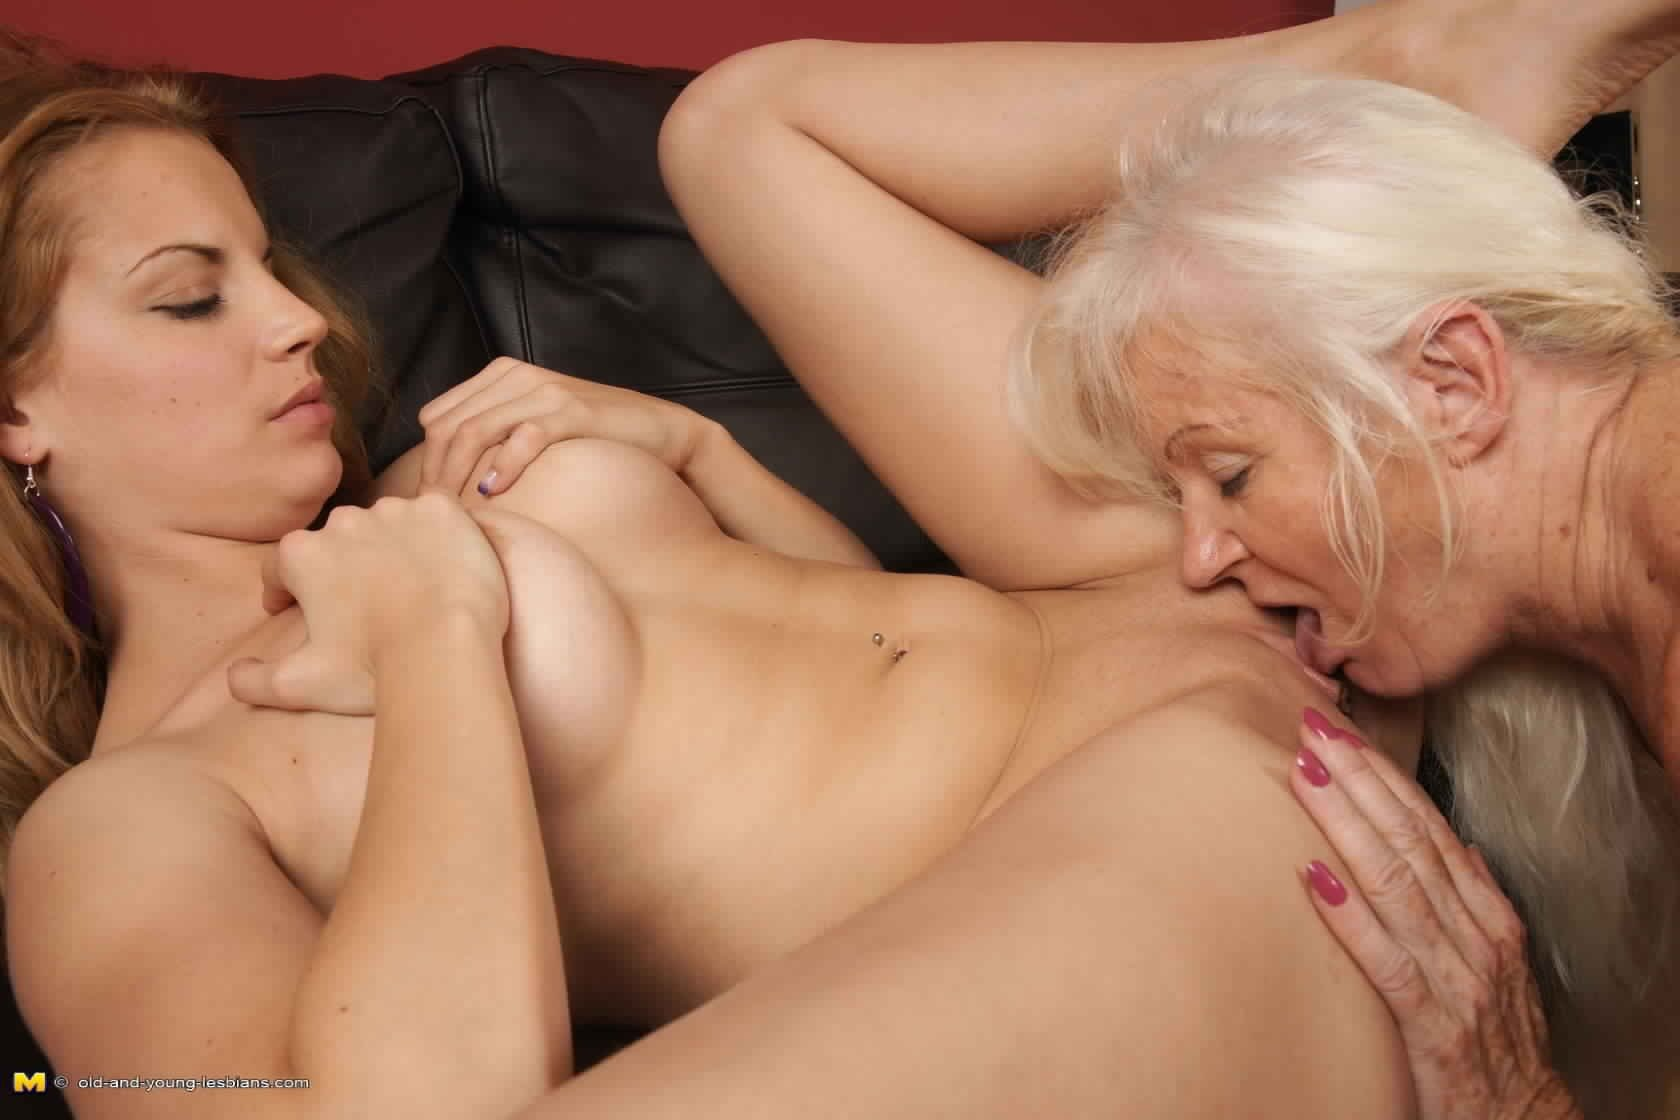 Old And Young Lesbian Gallery 2930-5752